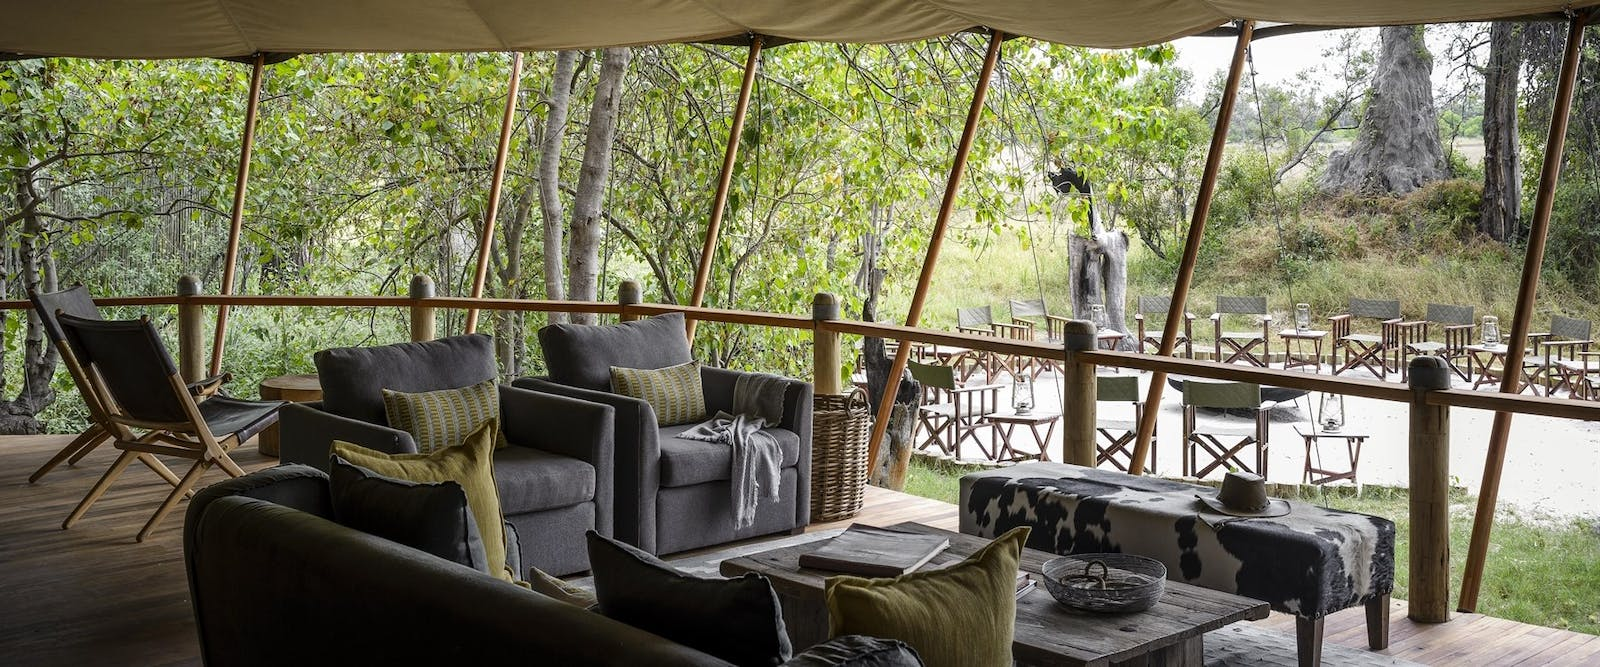 Lounge Area at Sanctuary Stanley's Camp, Botswana